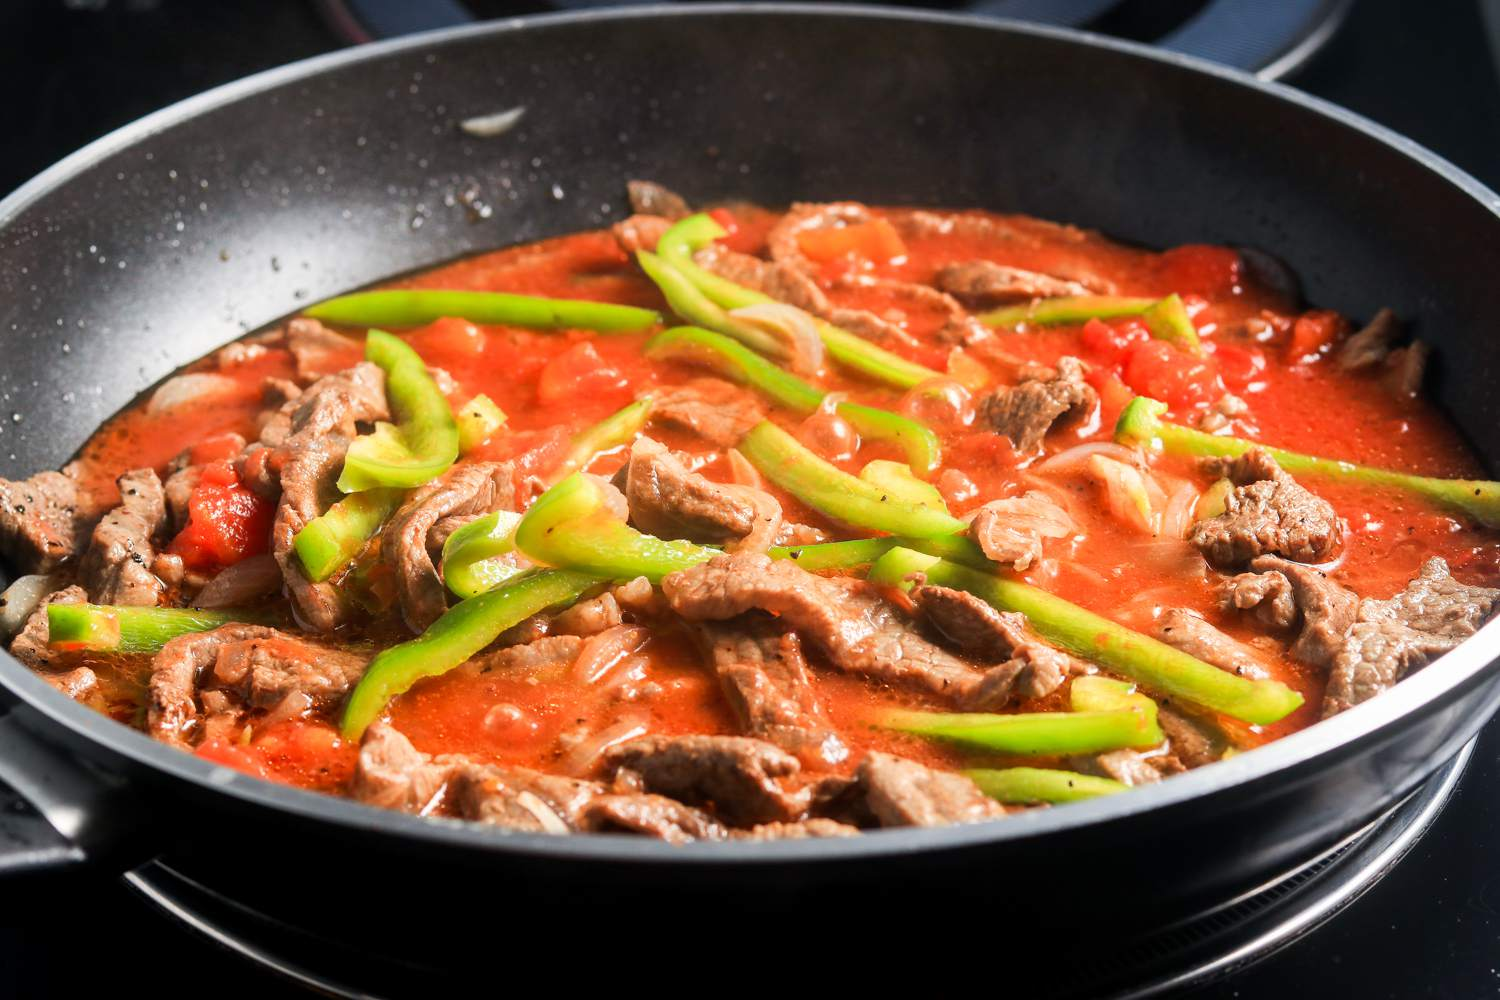 Add stewed tomatoes and bell pepper to steak mixture in skillet